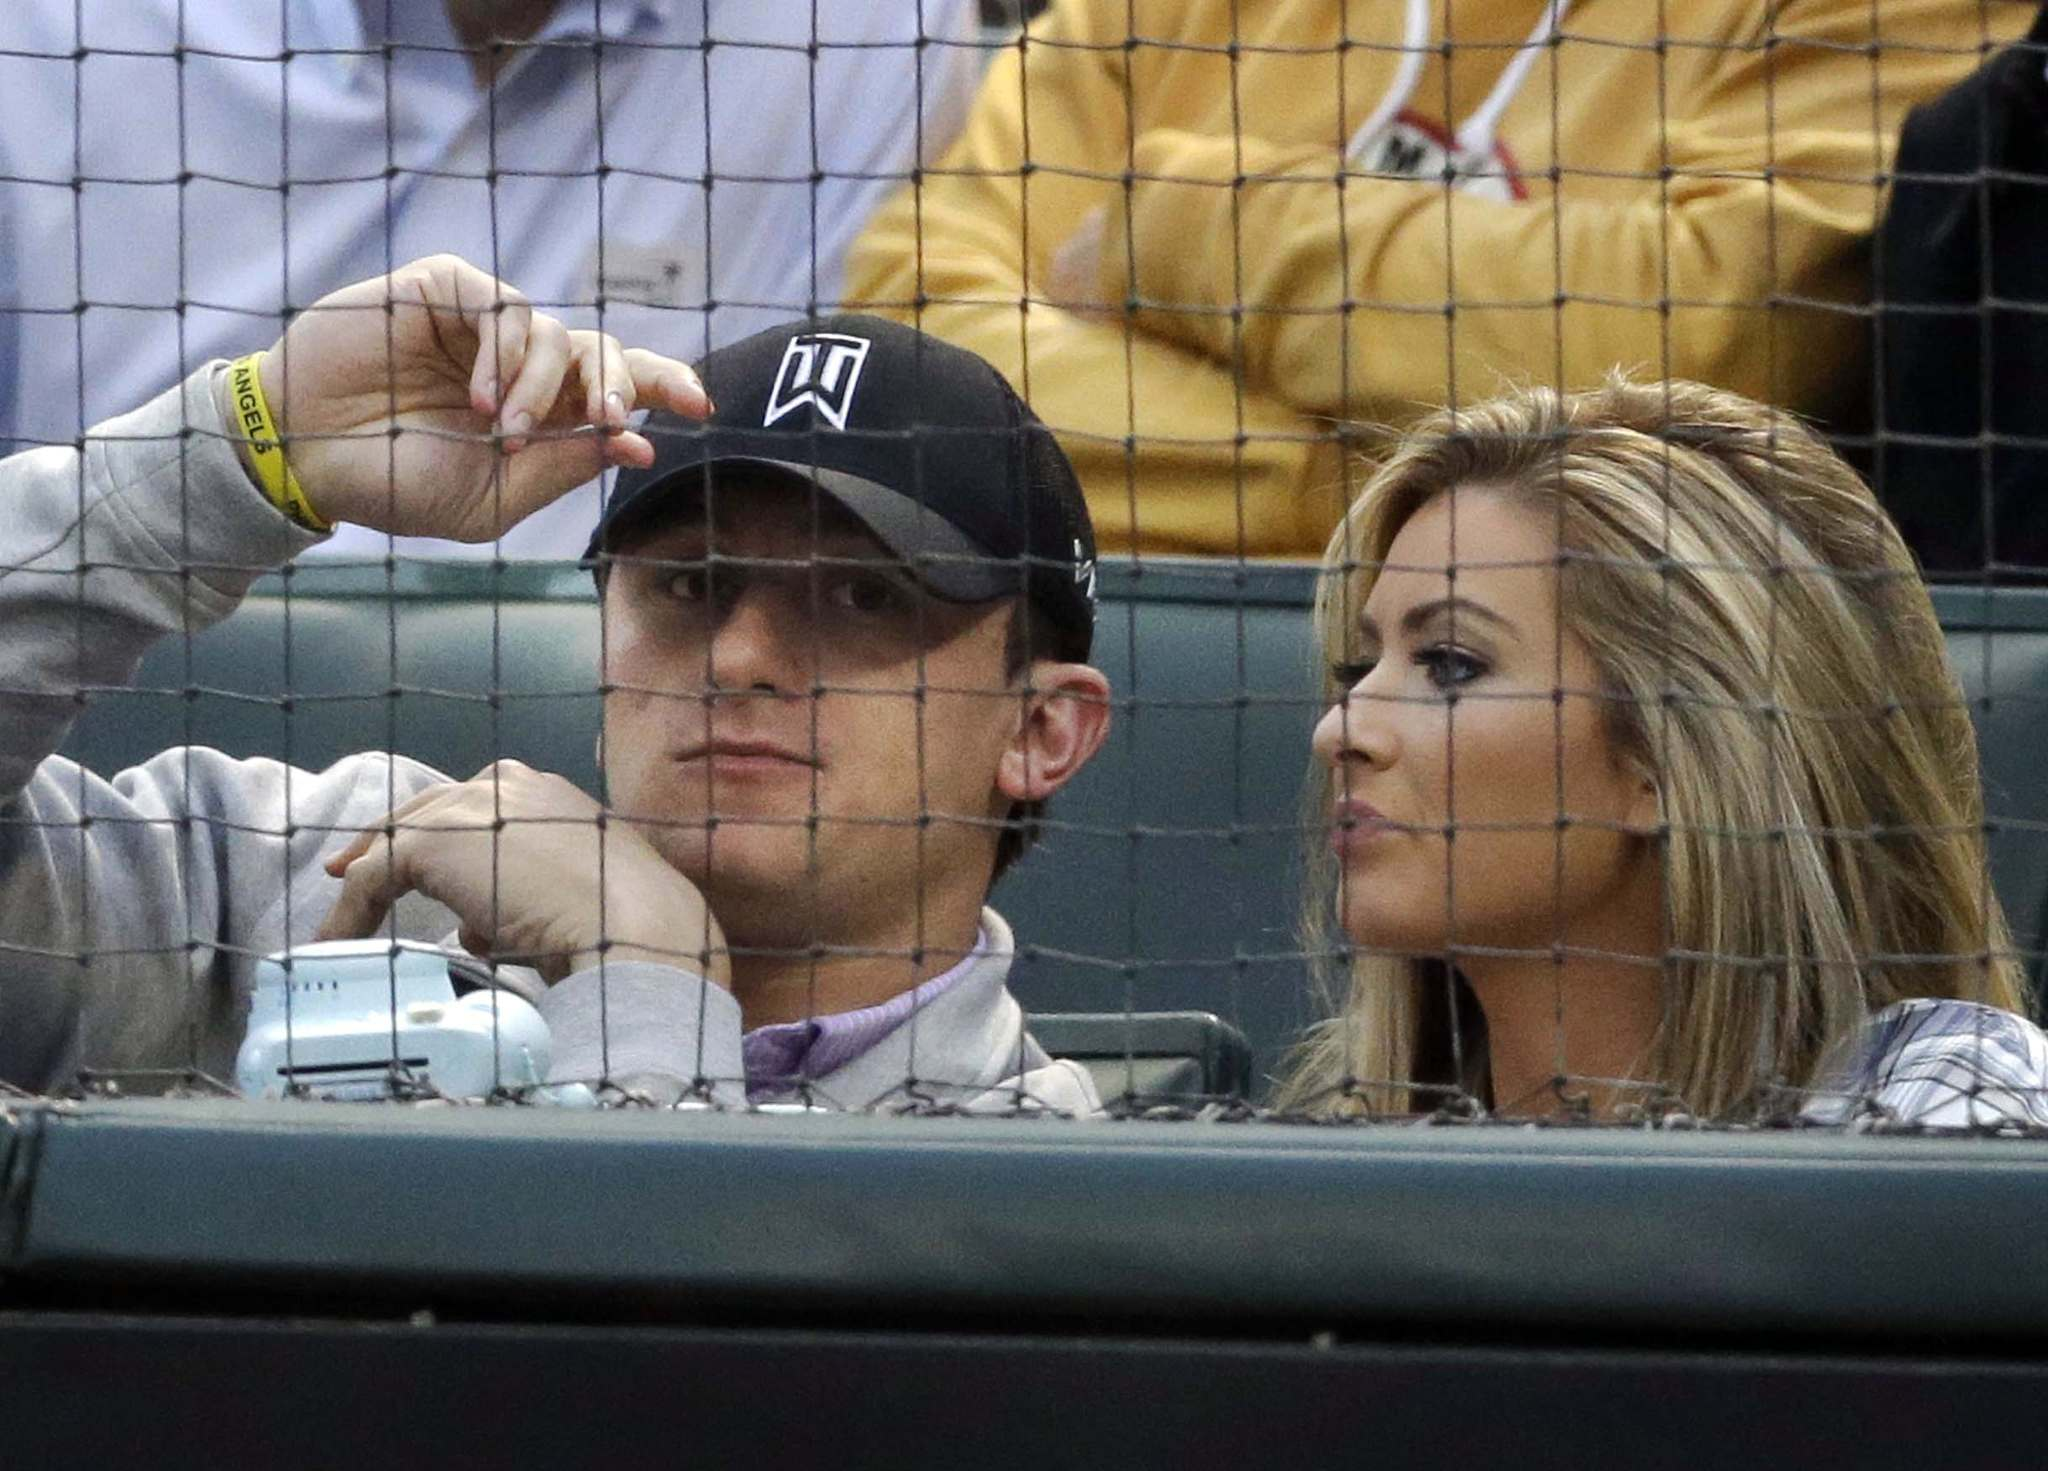 Johnny Manziel and Colleen Crowley at a baseball game in April 2015. (Associated Press files)